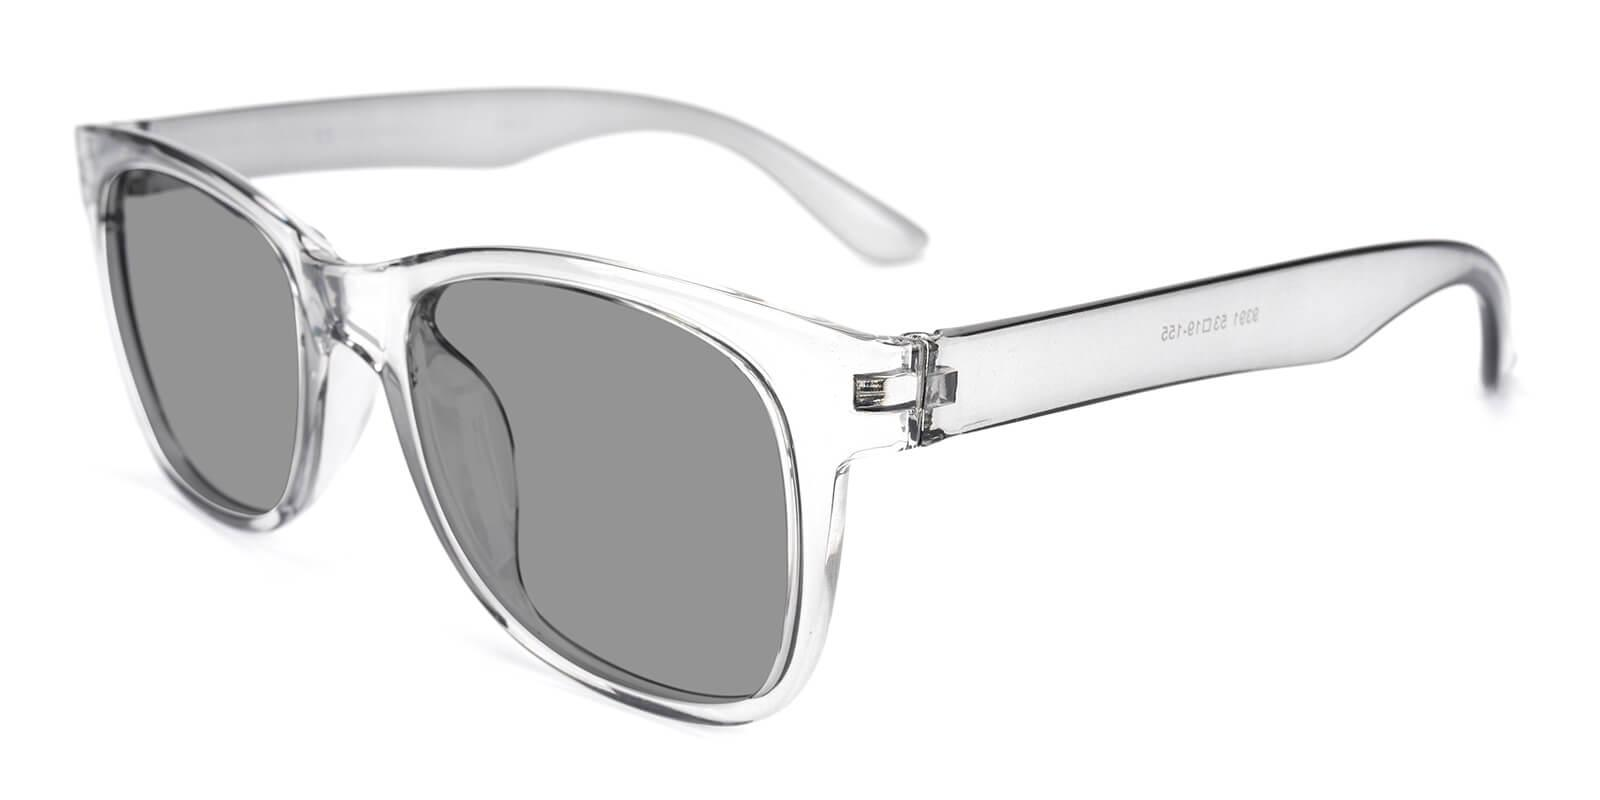 Tracly-Gray-Square / Cat-TR-Sunglasses-additional1